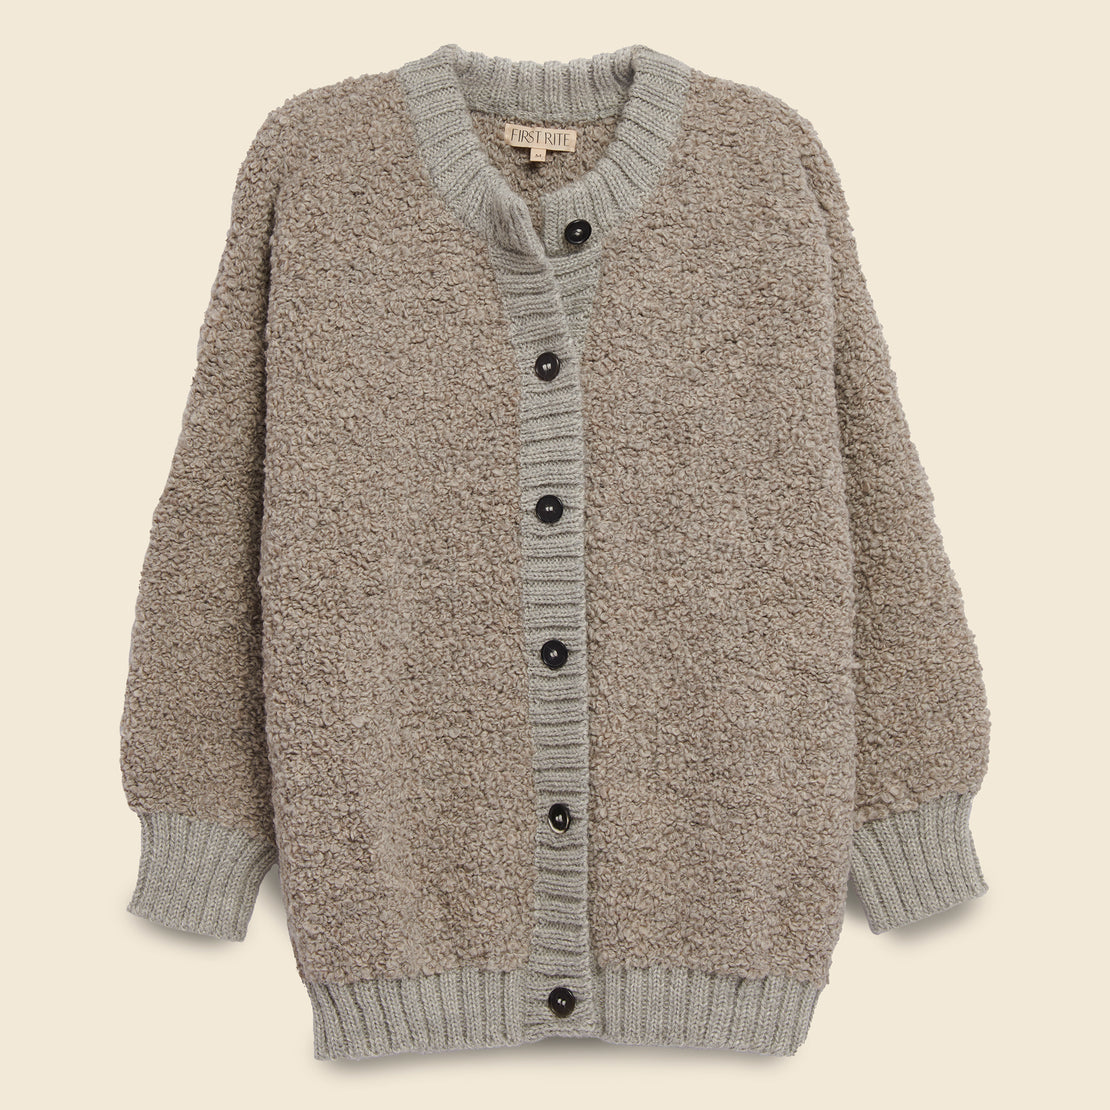 First Rite Bulky Button Cardigan - Ash